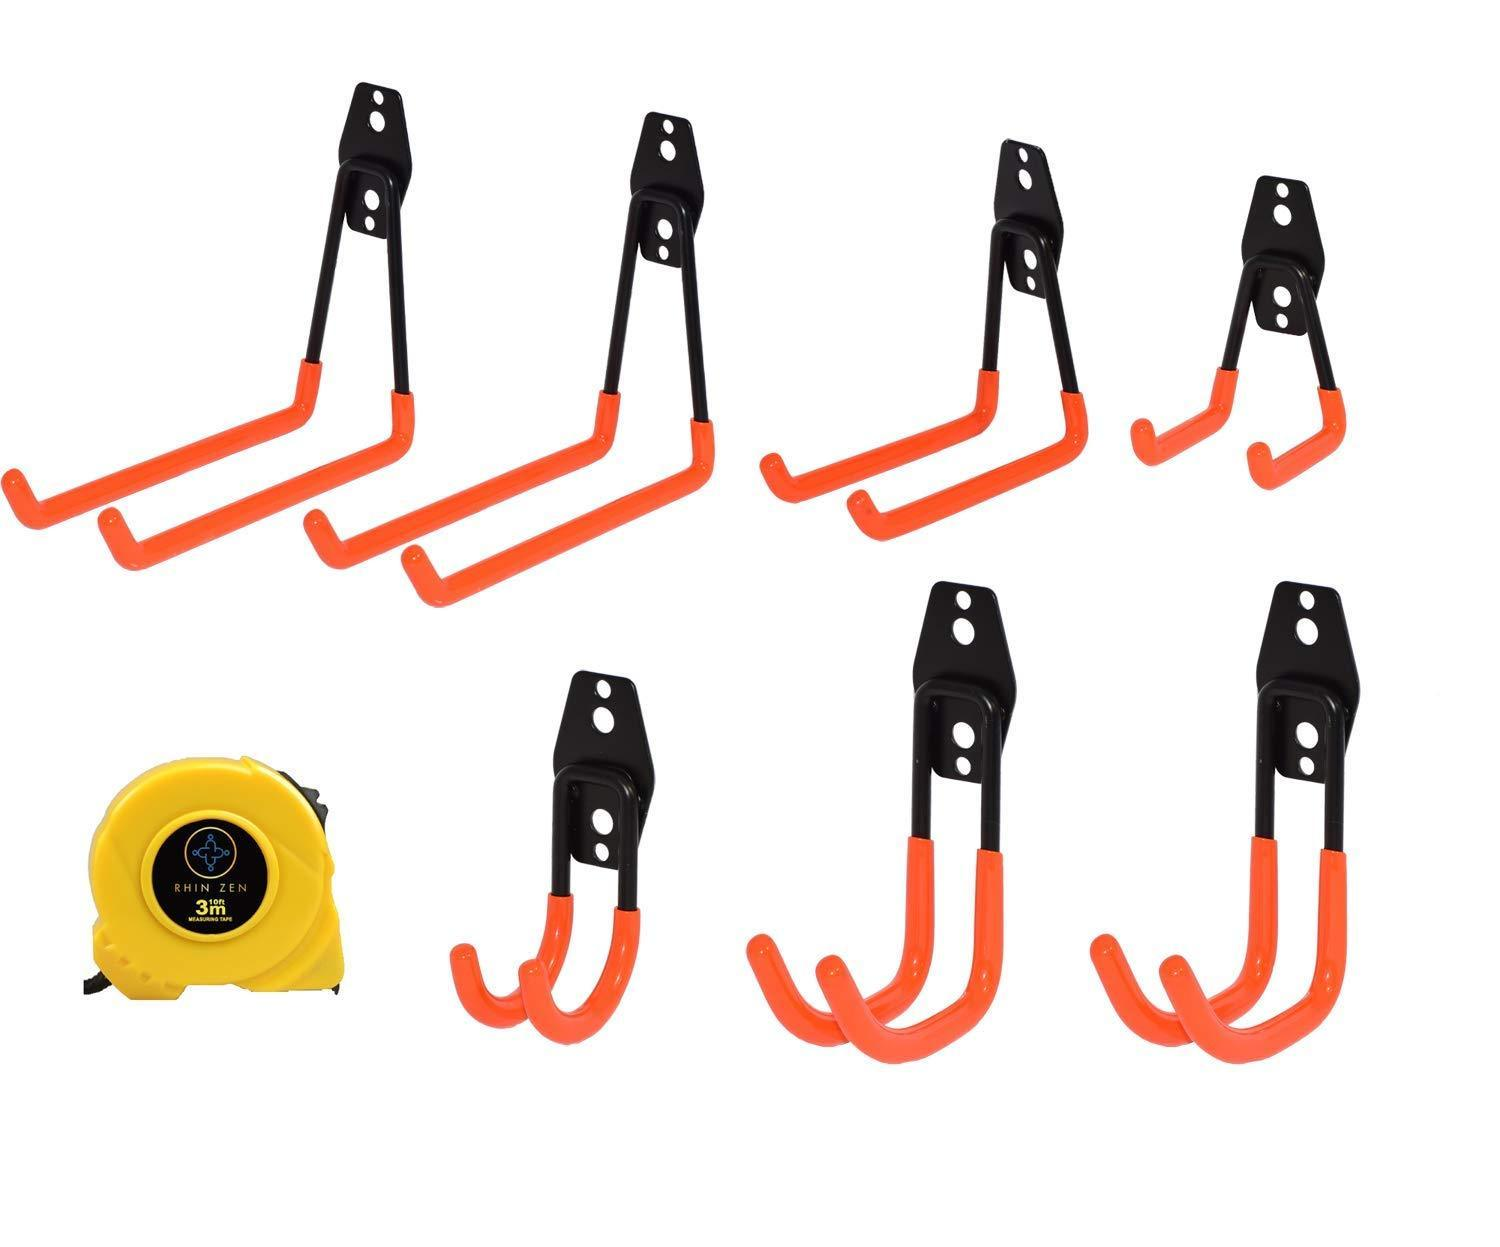 Explore rhin zen pack of 7 with free measuring tape hooks for garage storage heavy duty steel utility j hook for hanging bike shovel ladder garden lawn tool screw in wall and ceiling mounting